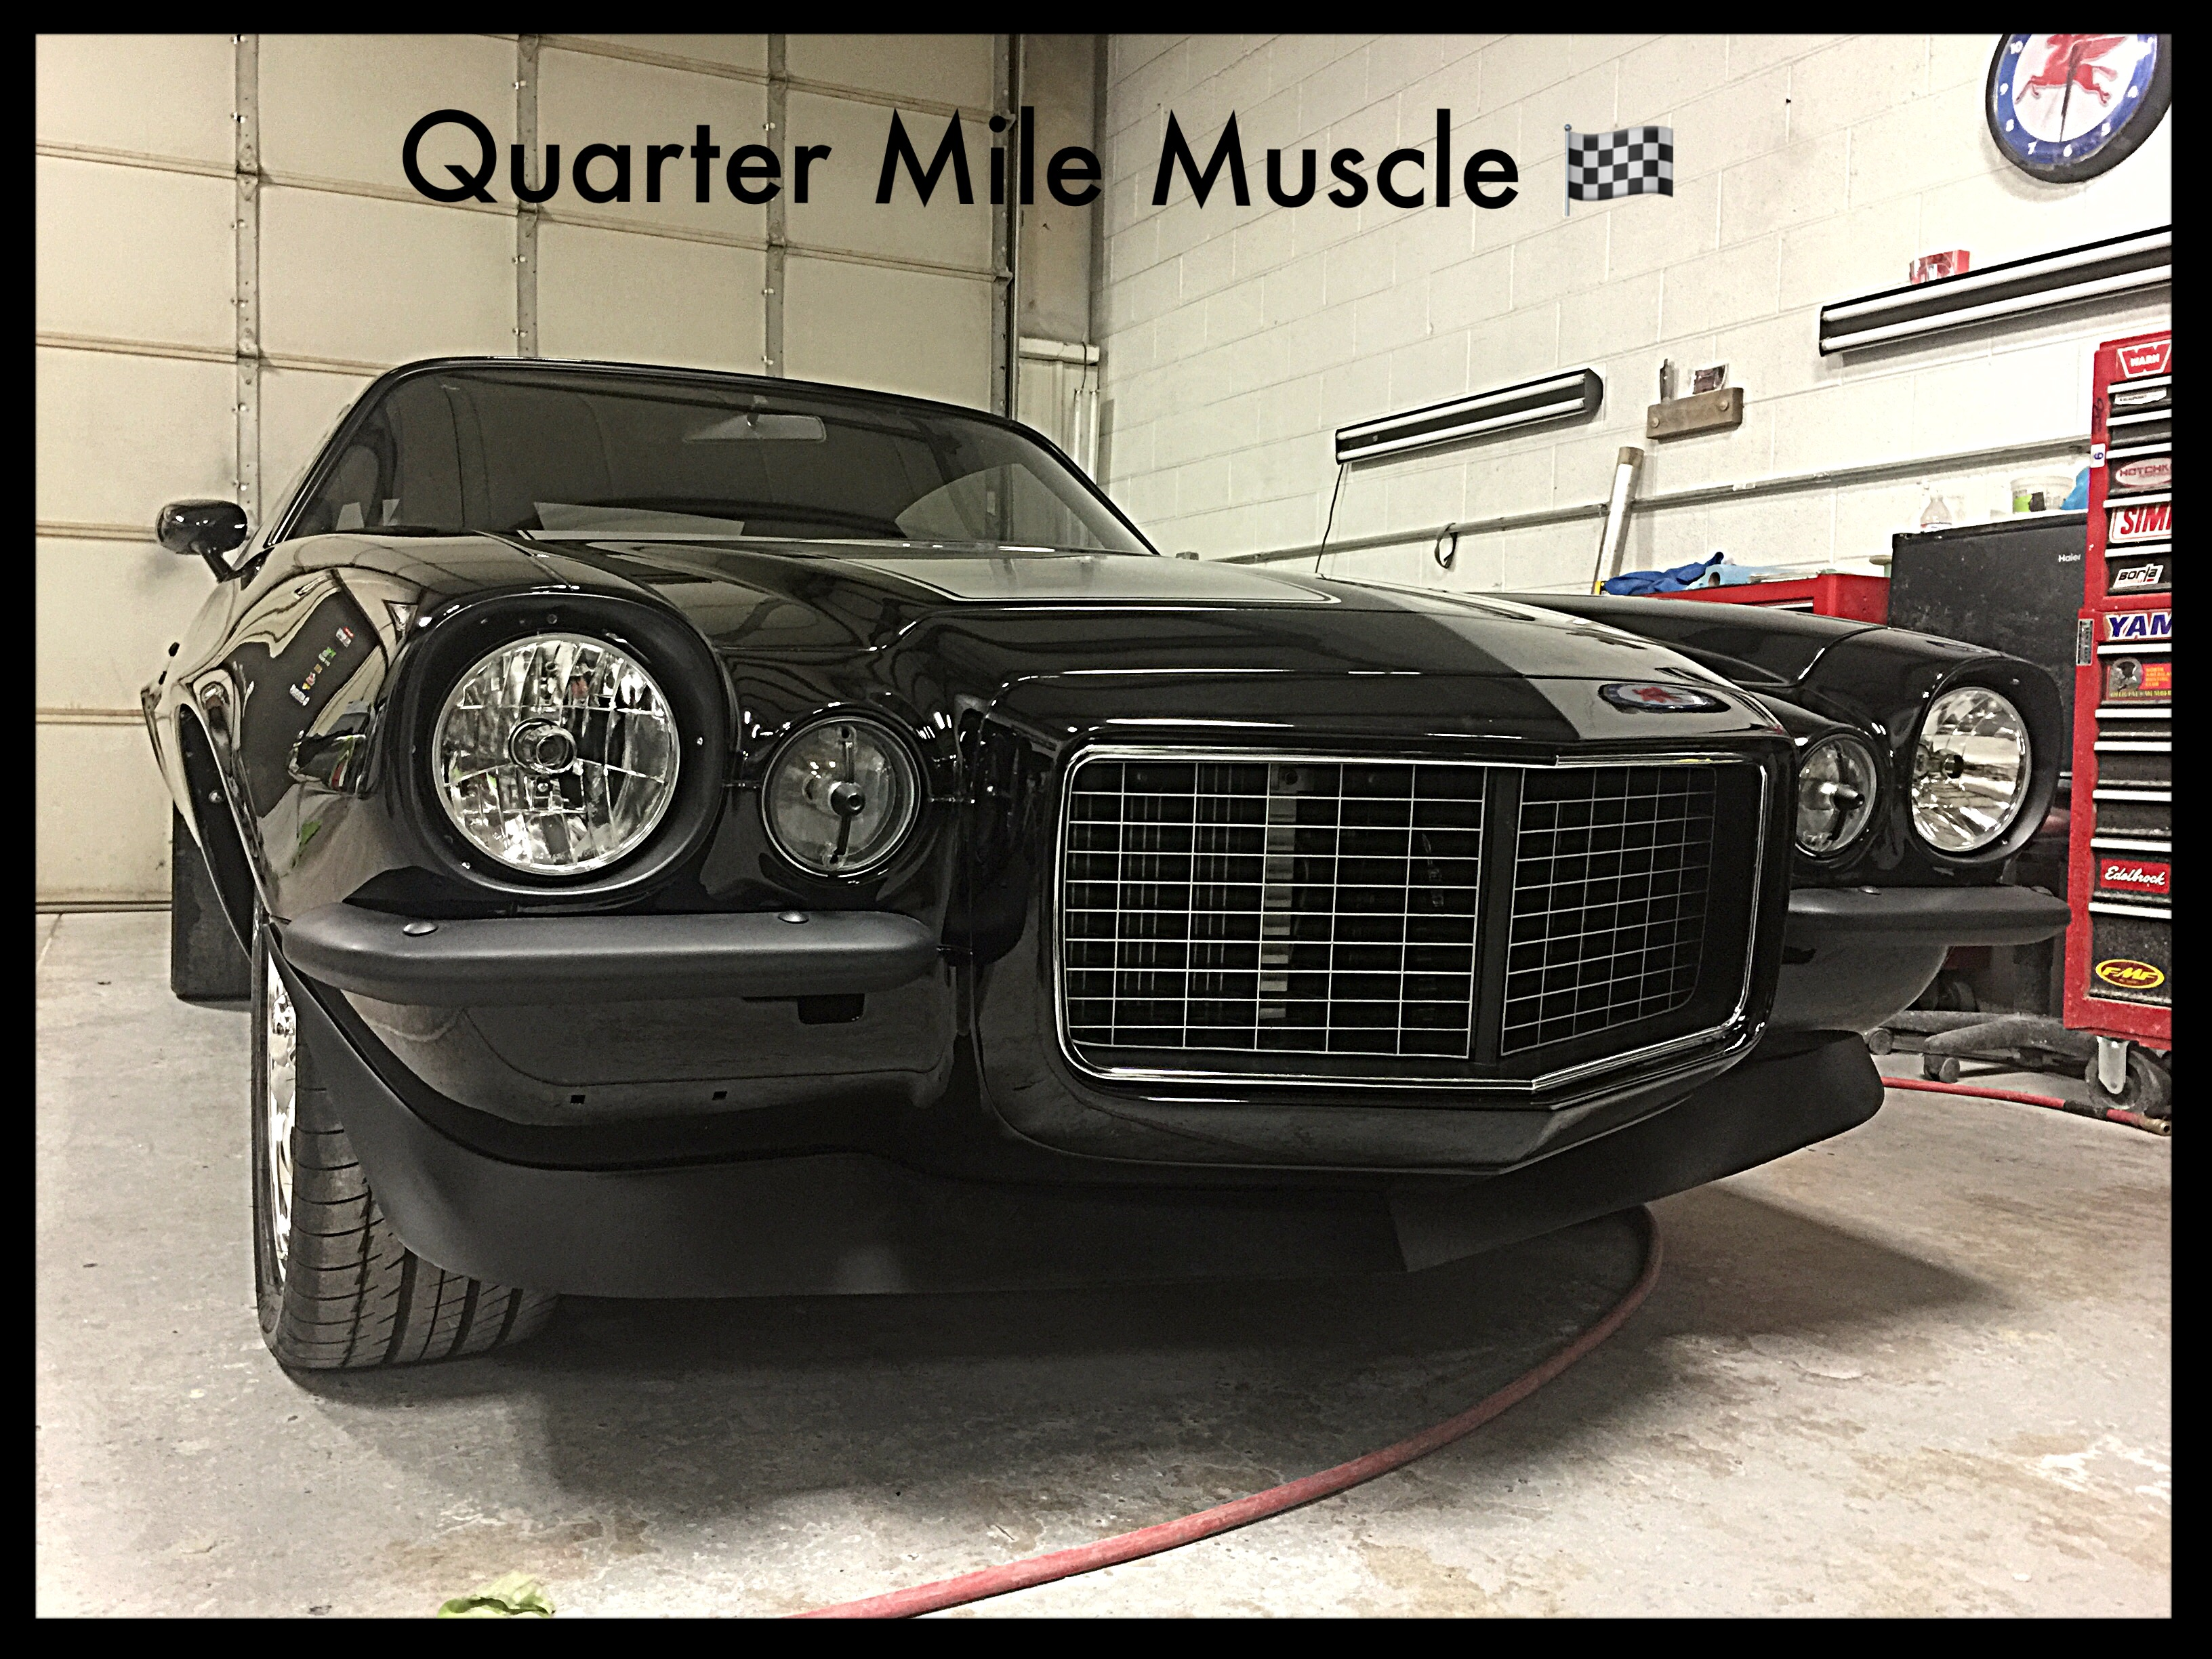 Quarter Mile Muscle - Projects